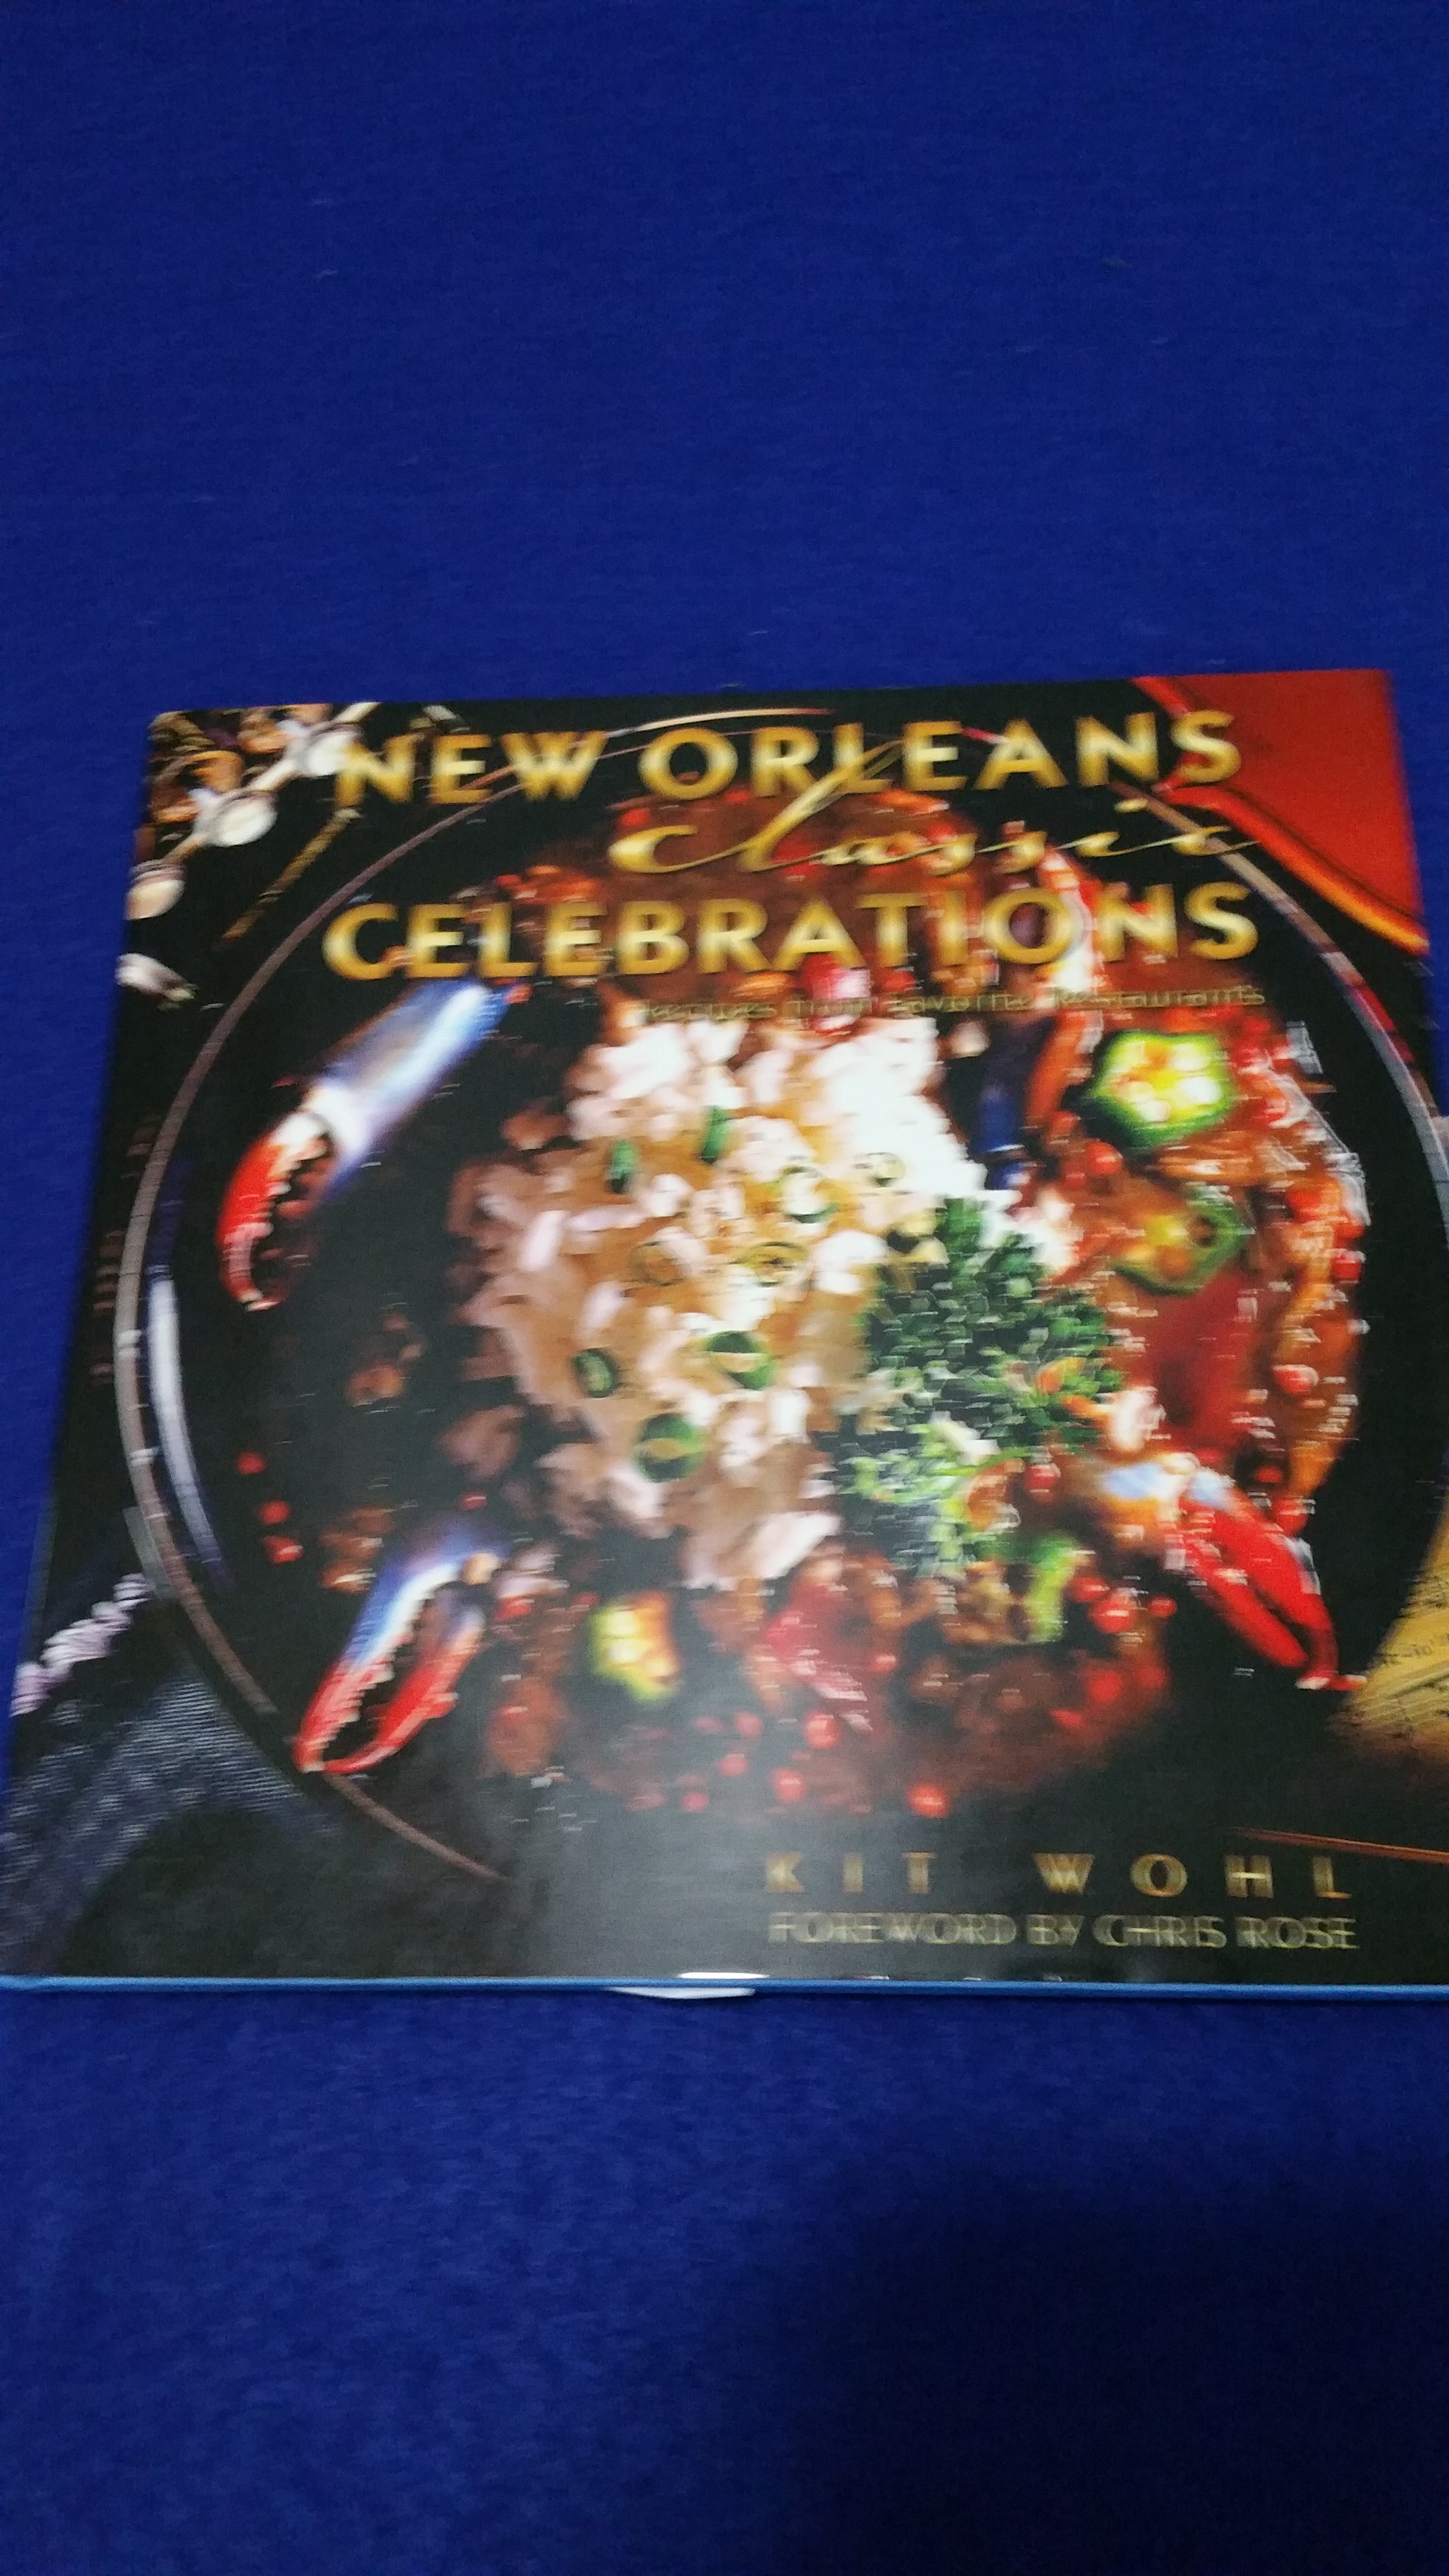 Kit Wohl - Celebration Cookbook